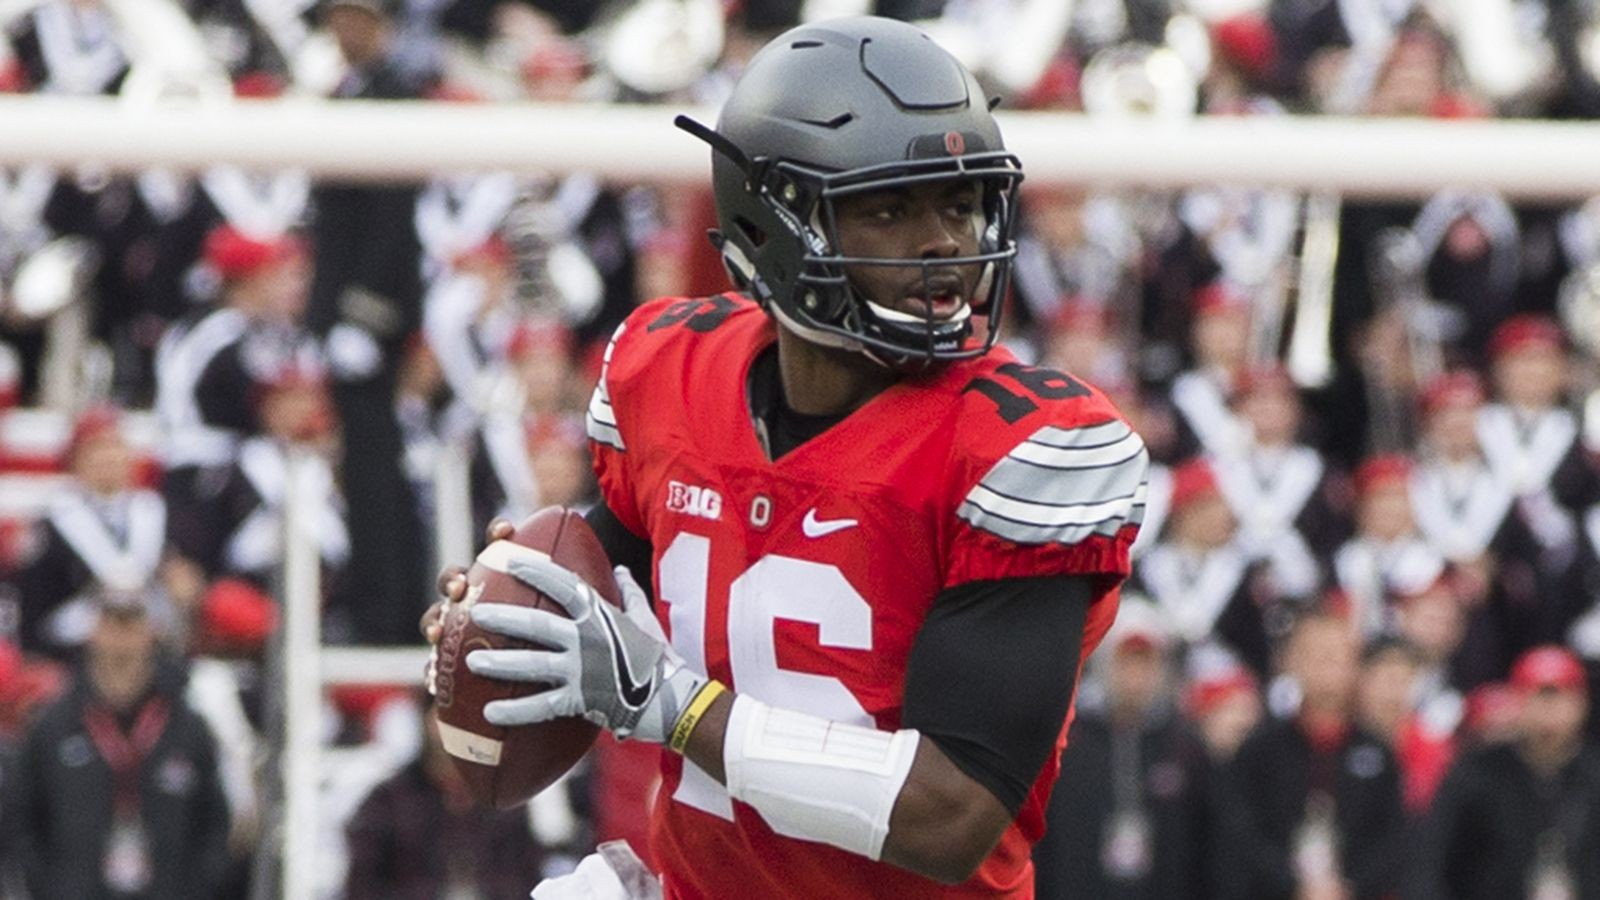 Ohio State Score Ohio State Vs Michigan 2016 Final Score With 3 Things To Know